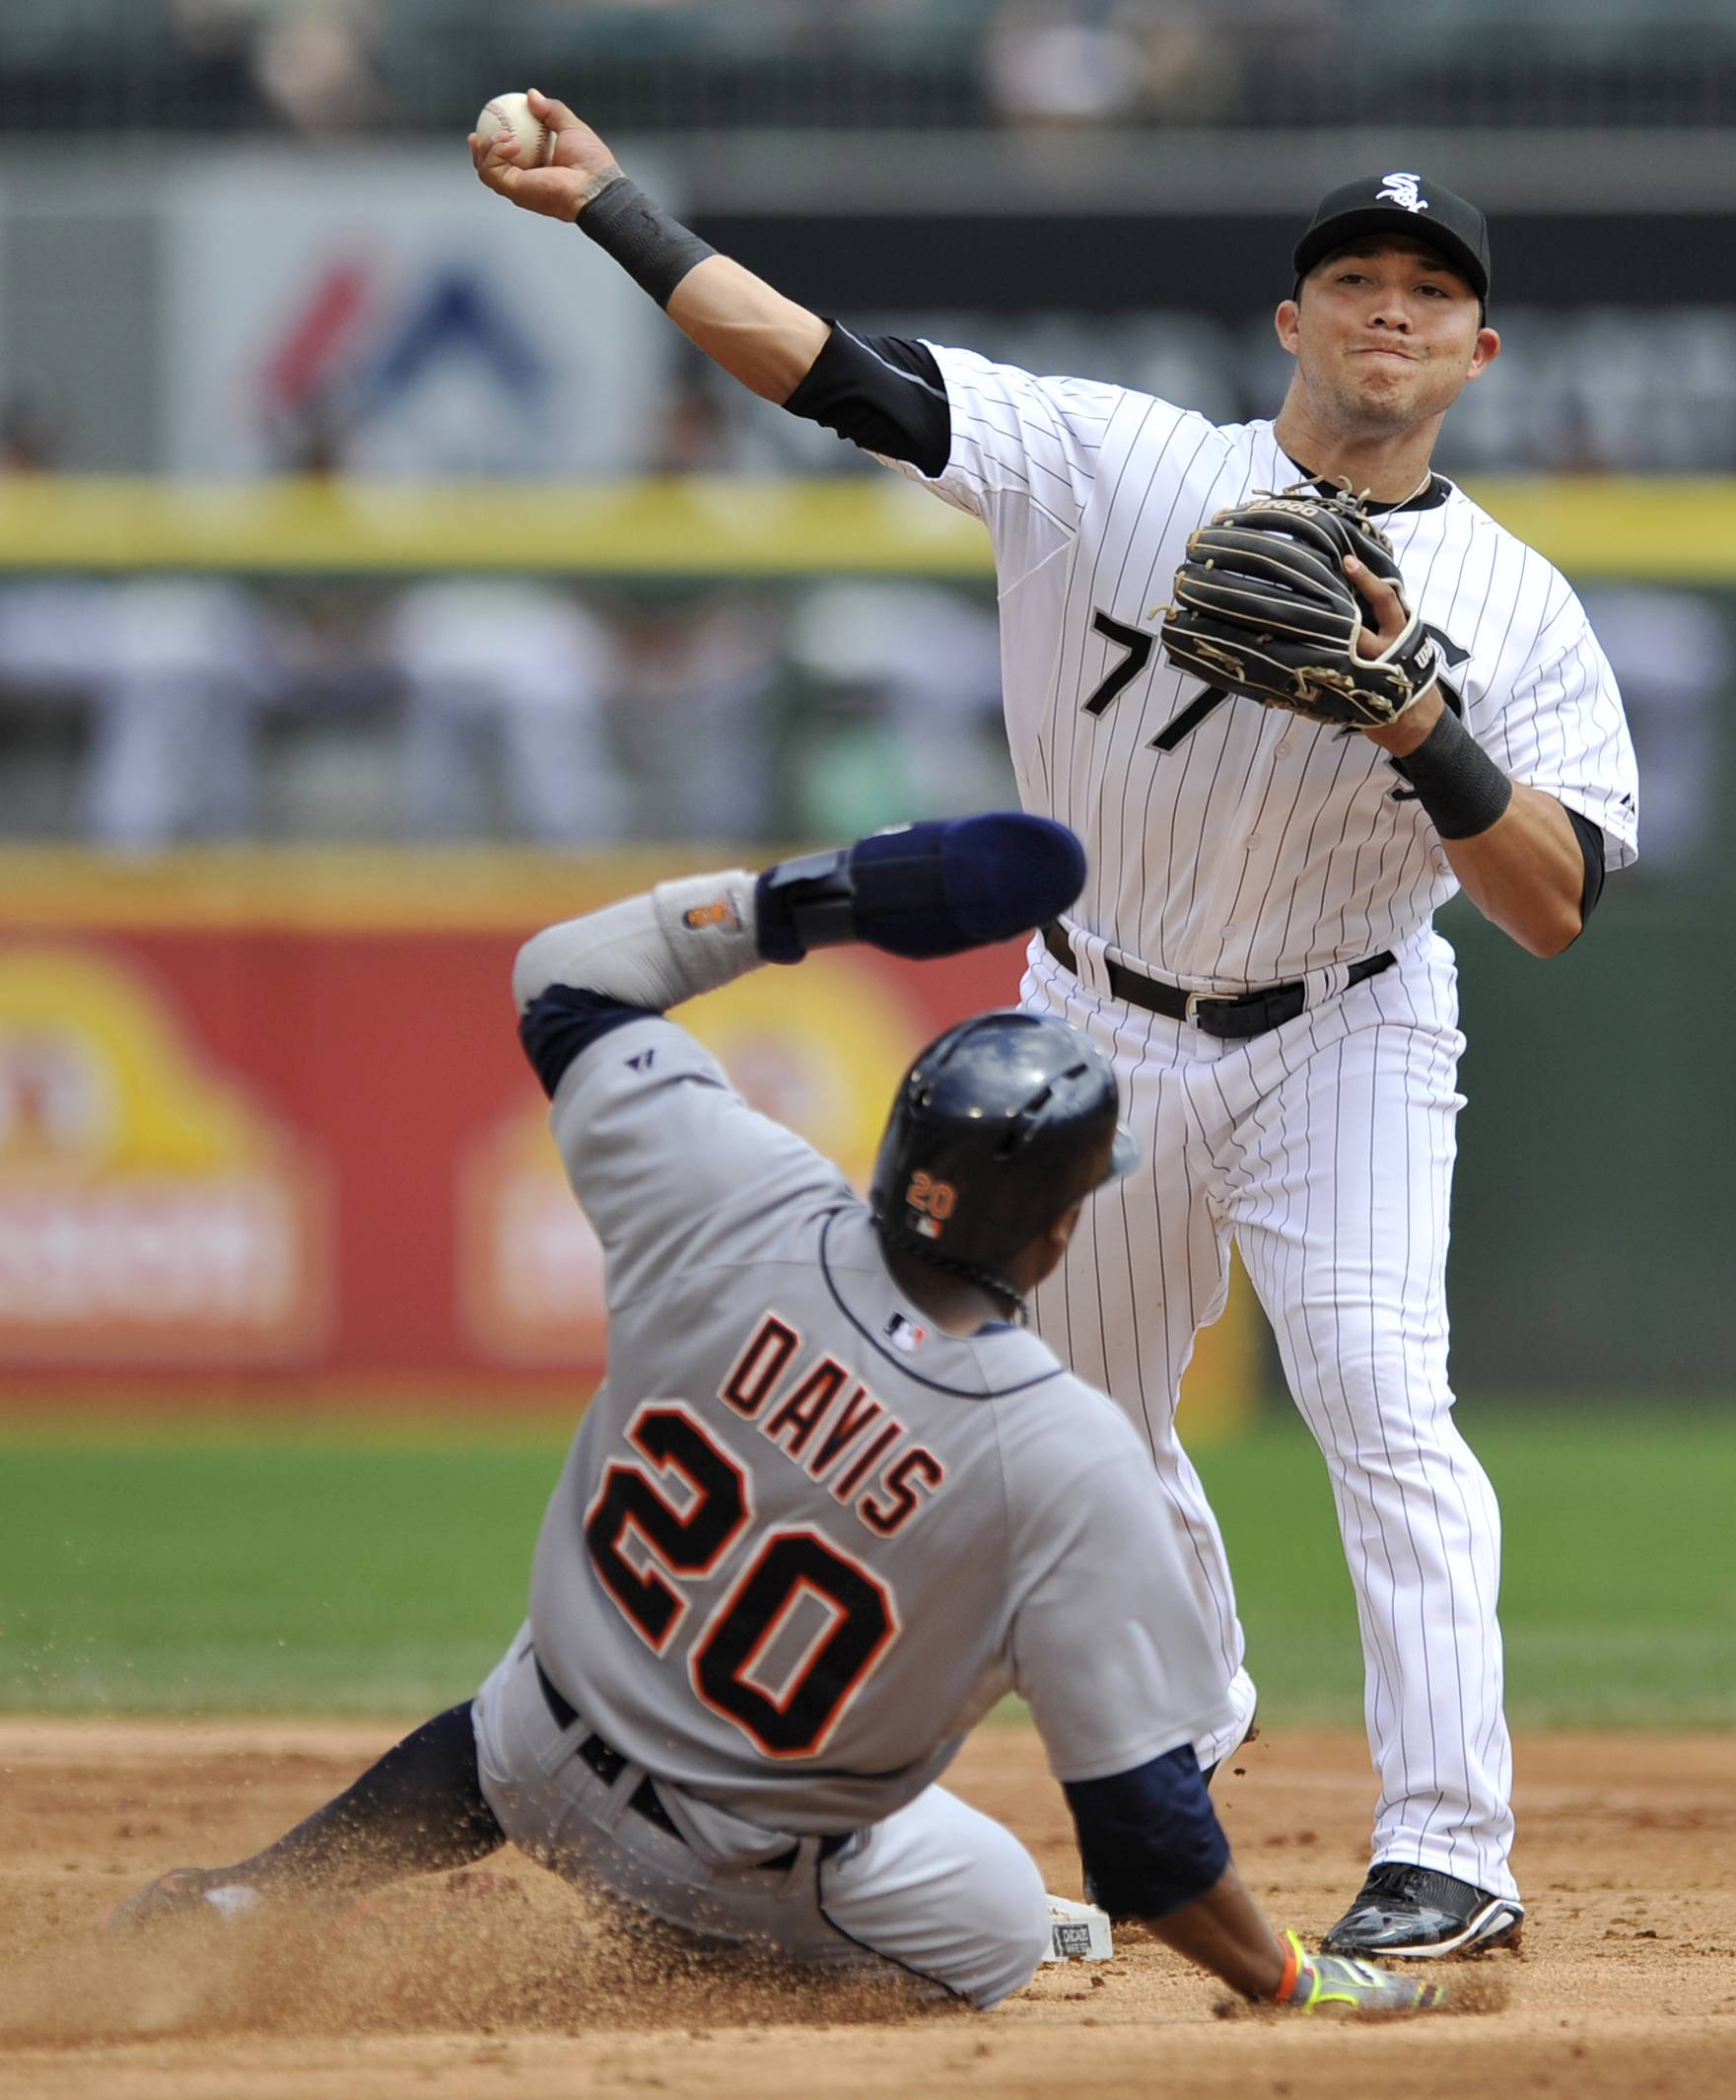 Chicago White Sox second baseman Carlos Sanchez (77), throws to first base after forcing out Detroit Tigers' Rajai Davis (20), at second base during the second inning of the first baseball game of a doubleheader  in Chicago, Saturday, Aug. 30, 2014.